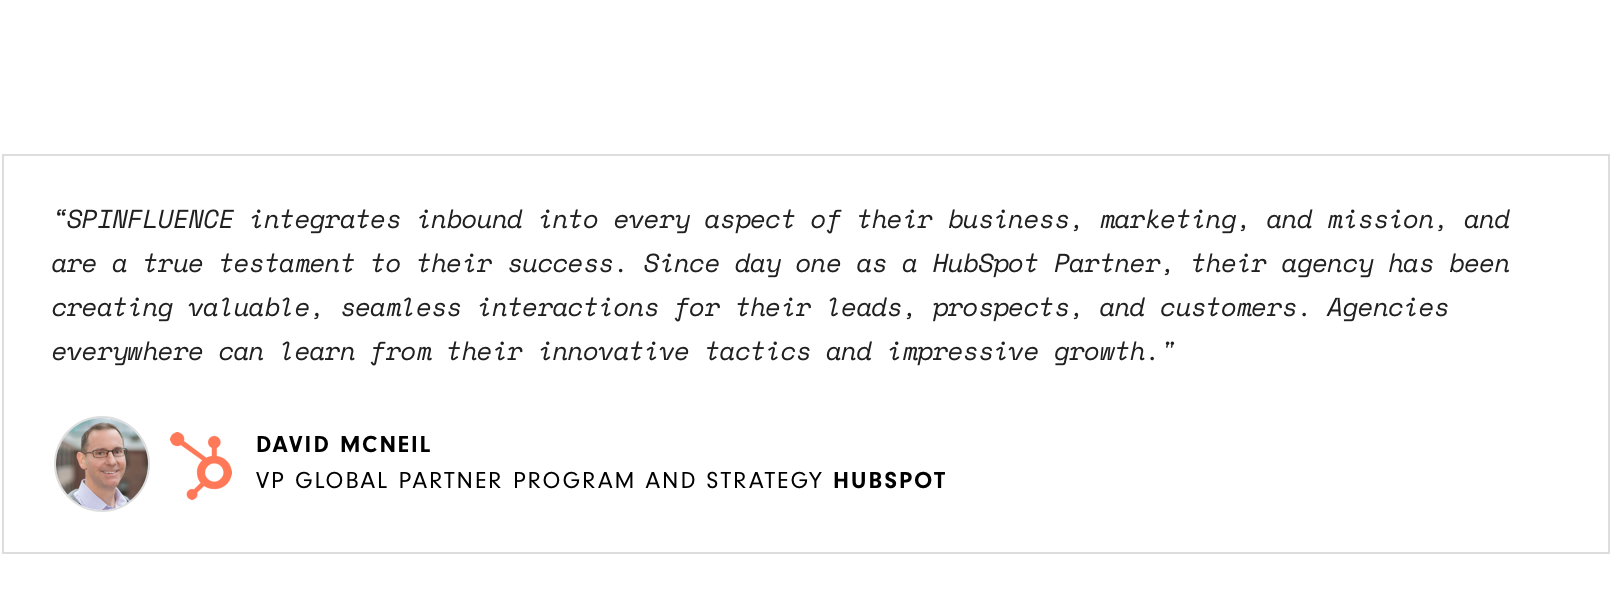 Testimonial from HubSpot VP